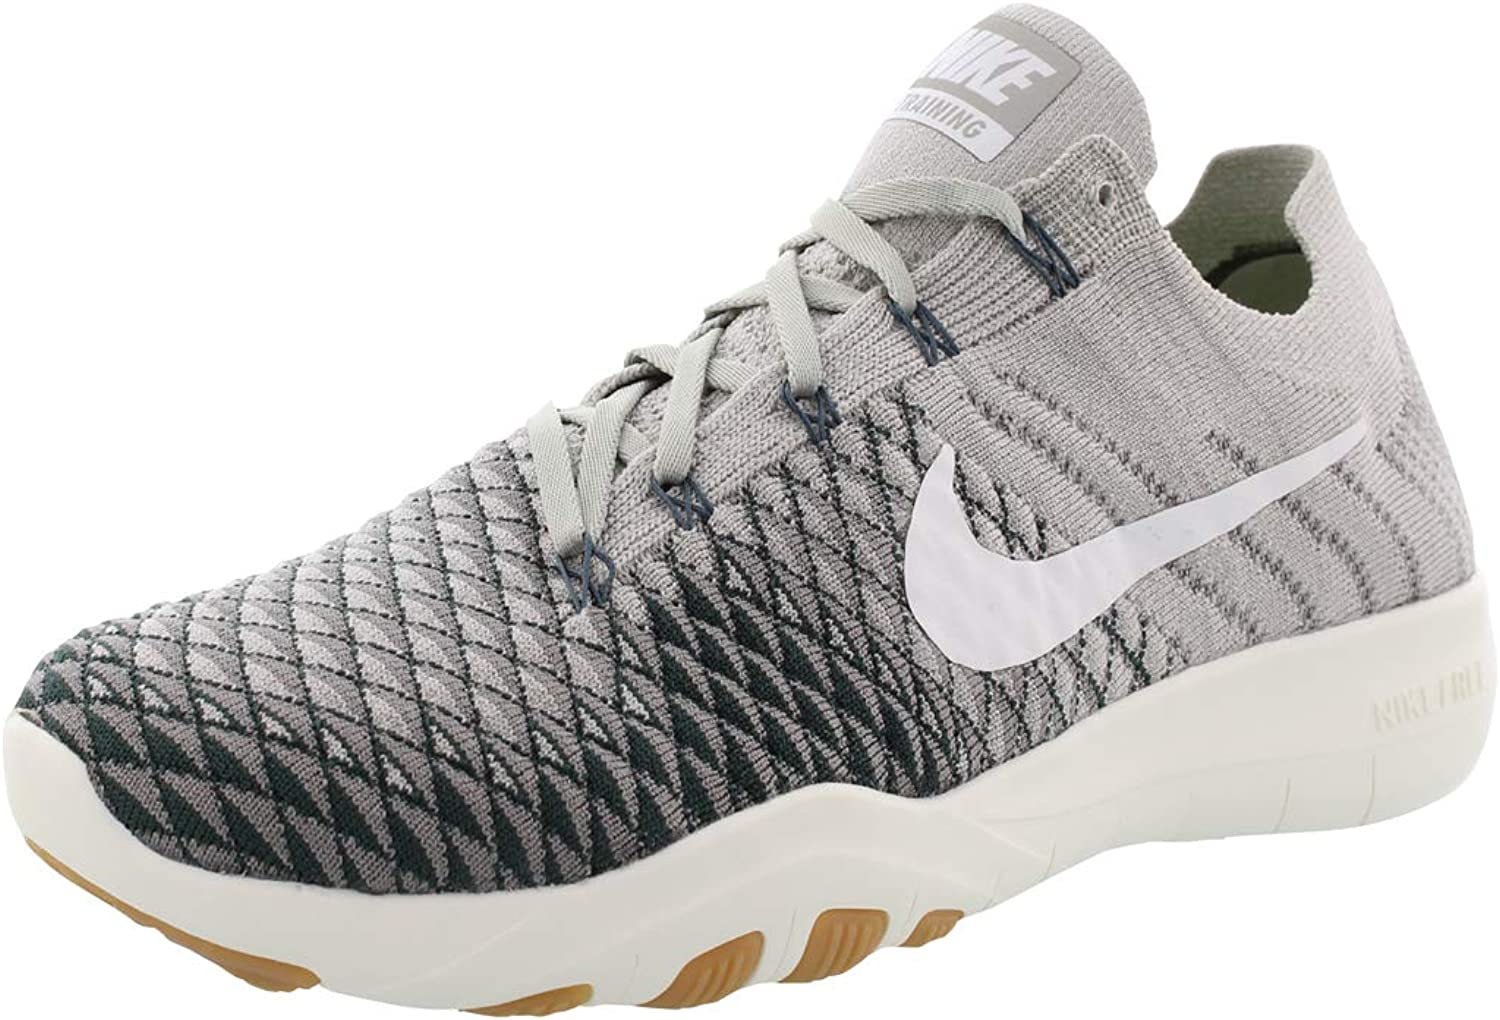 Nike Womens Free Tr Flyknit 2 Fabric Low Top Lace Up Running Sneaker